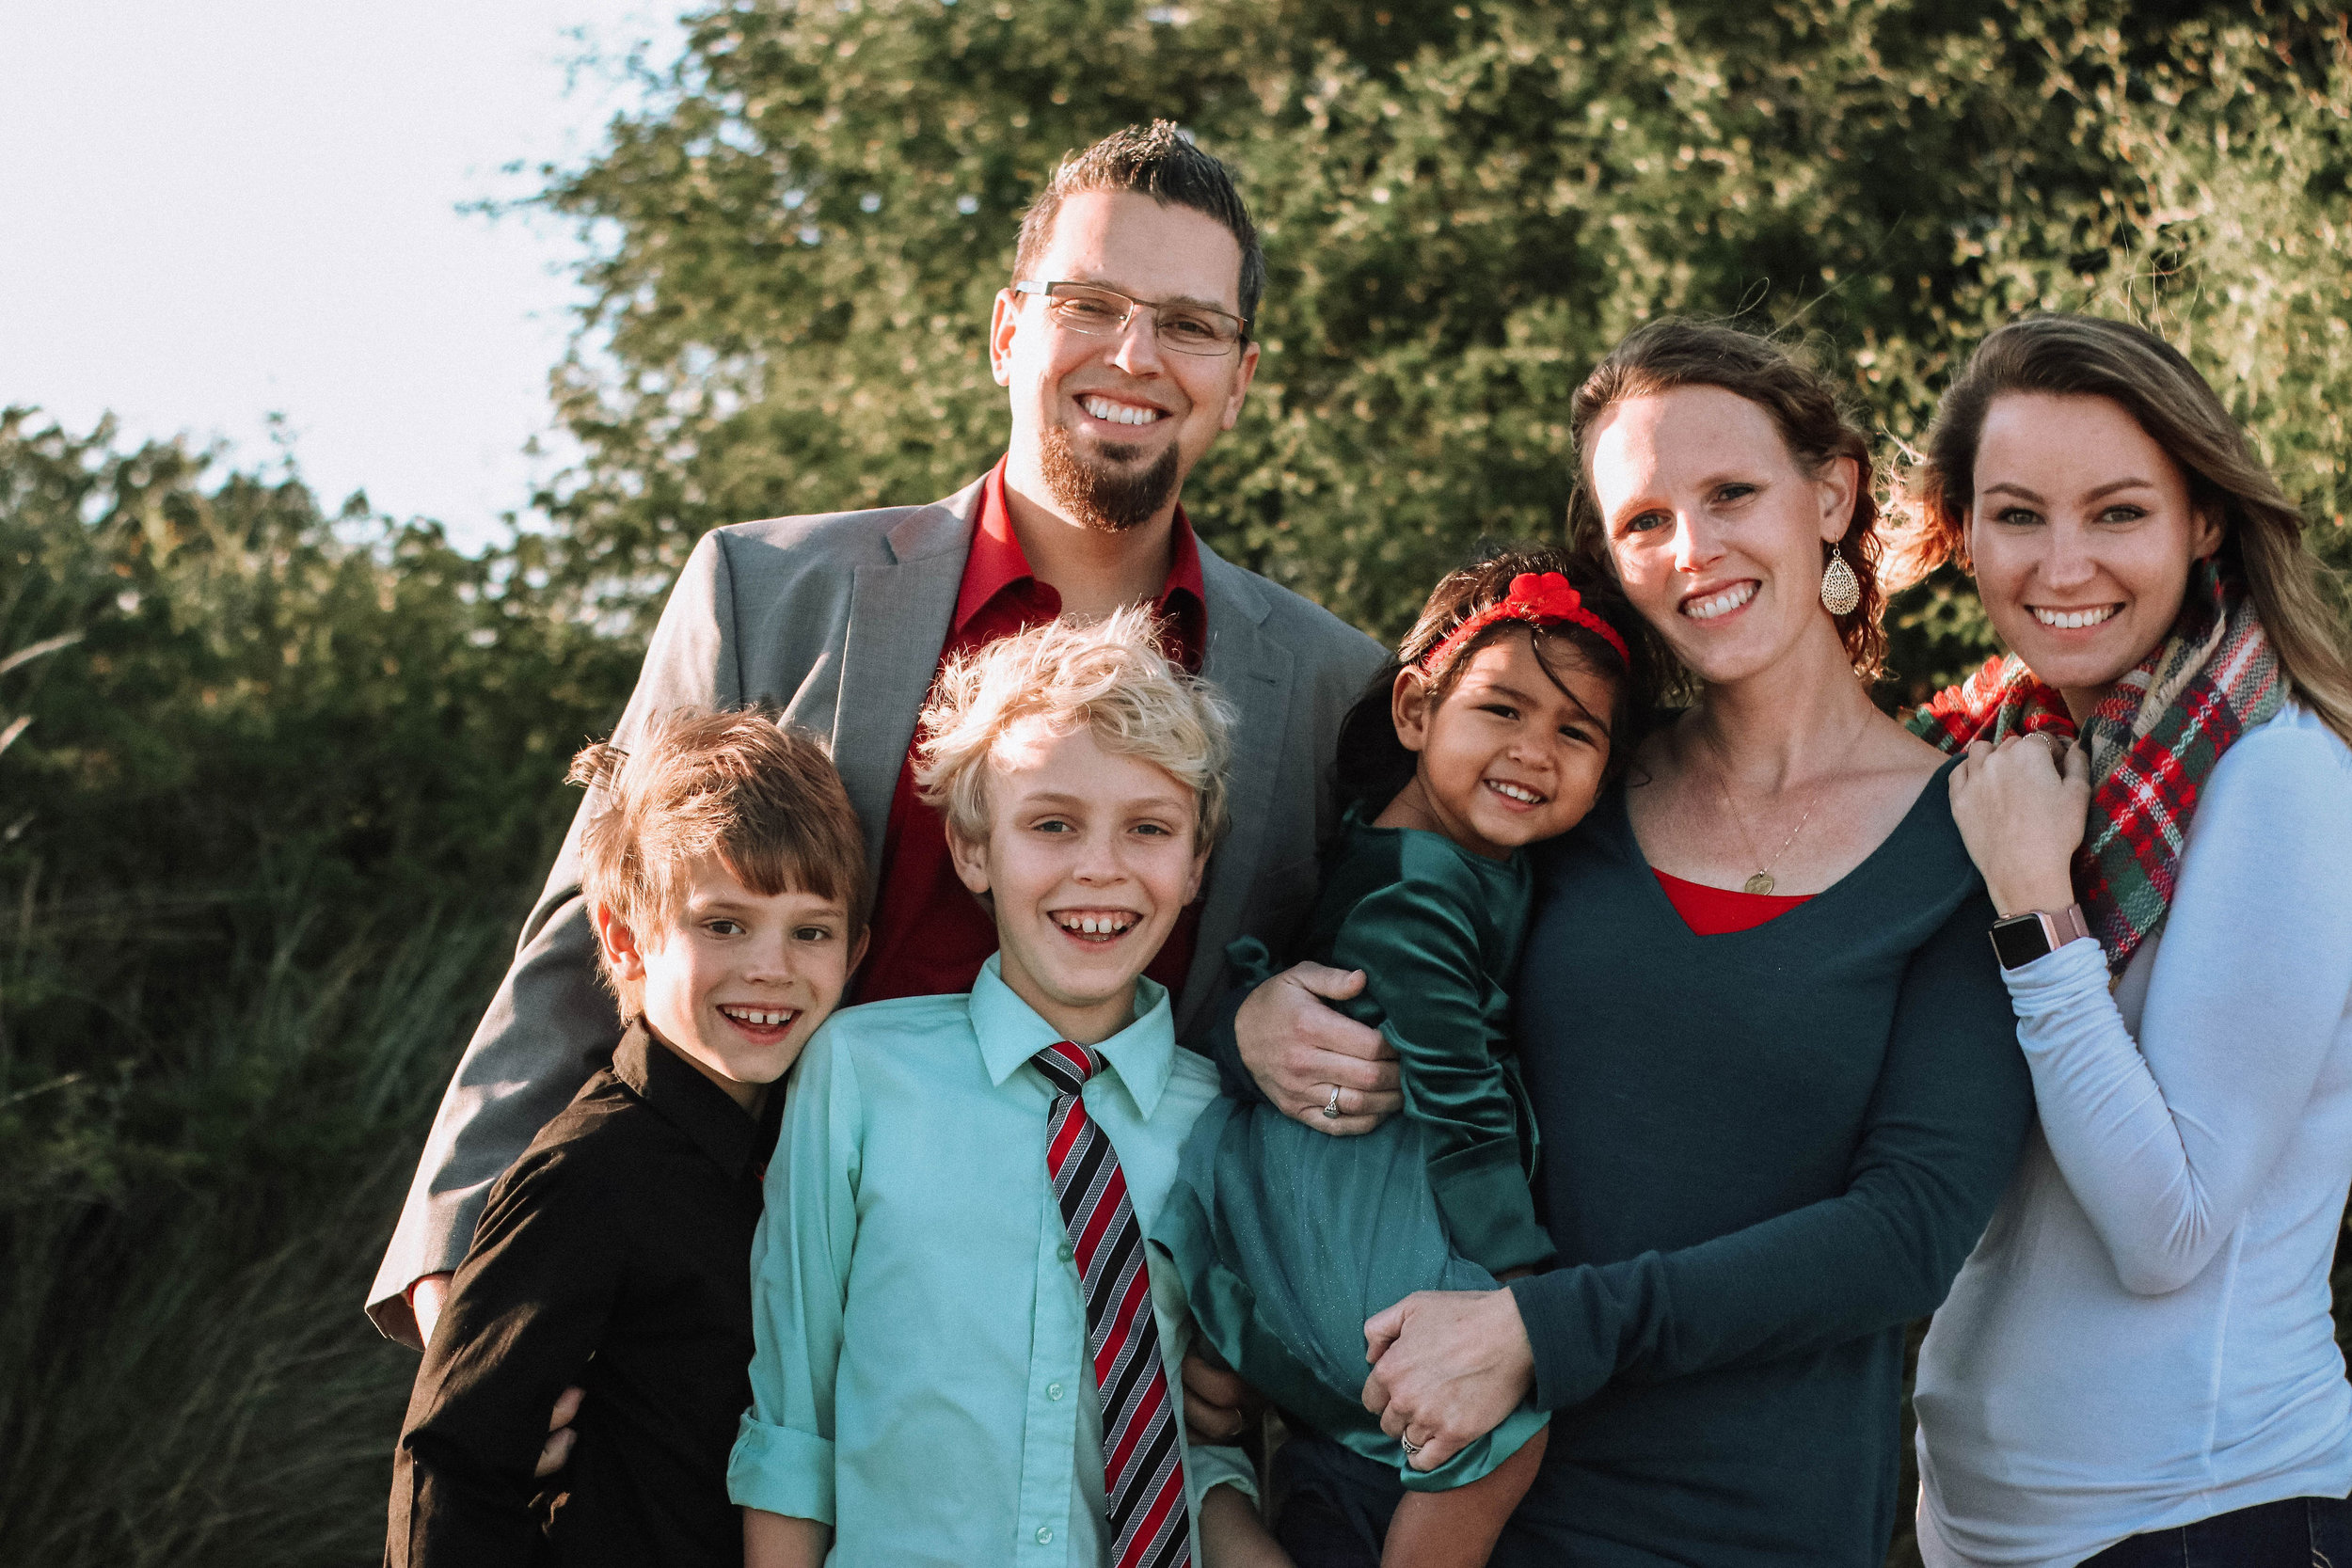 Senior Pastor: Matt Brennan - Matt came to Fellowship of Oso Creek in 2011 and became the Lead pastor in 2013. Matt and Sara have two adopted daughters and two sons. Matt is a graduate of Baylor University, Logsdon Seminary, and the South Texas School of Christians Studies.